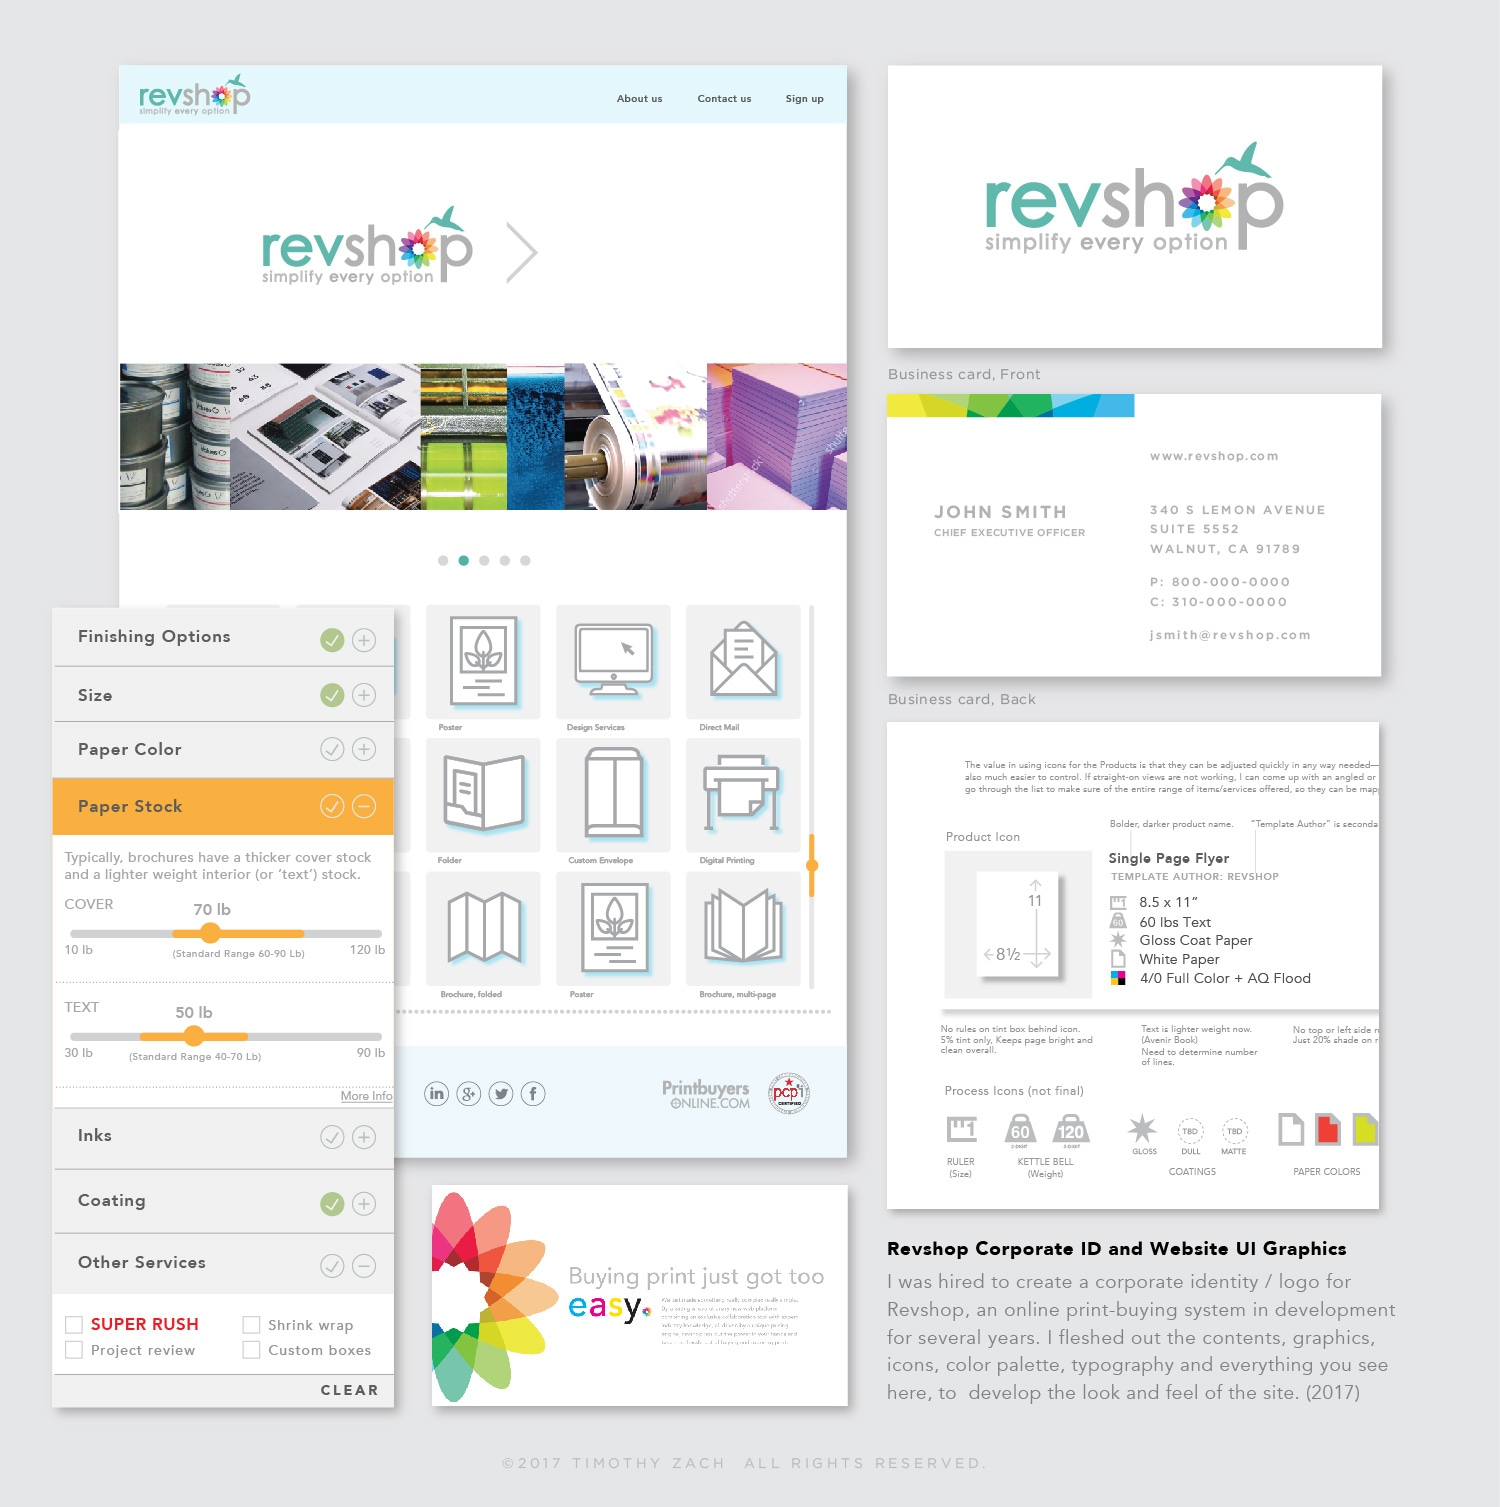 Revshop Corporate ID and Website UI Graphics